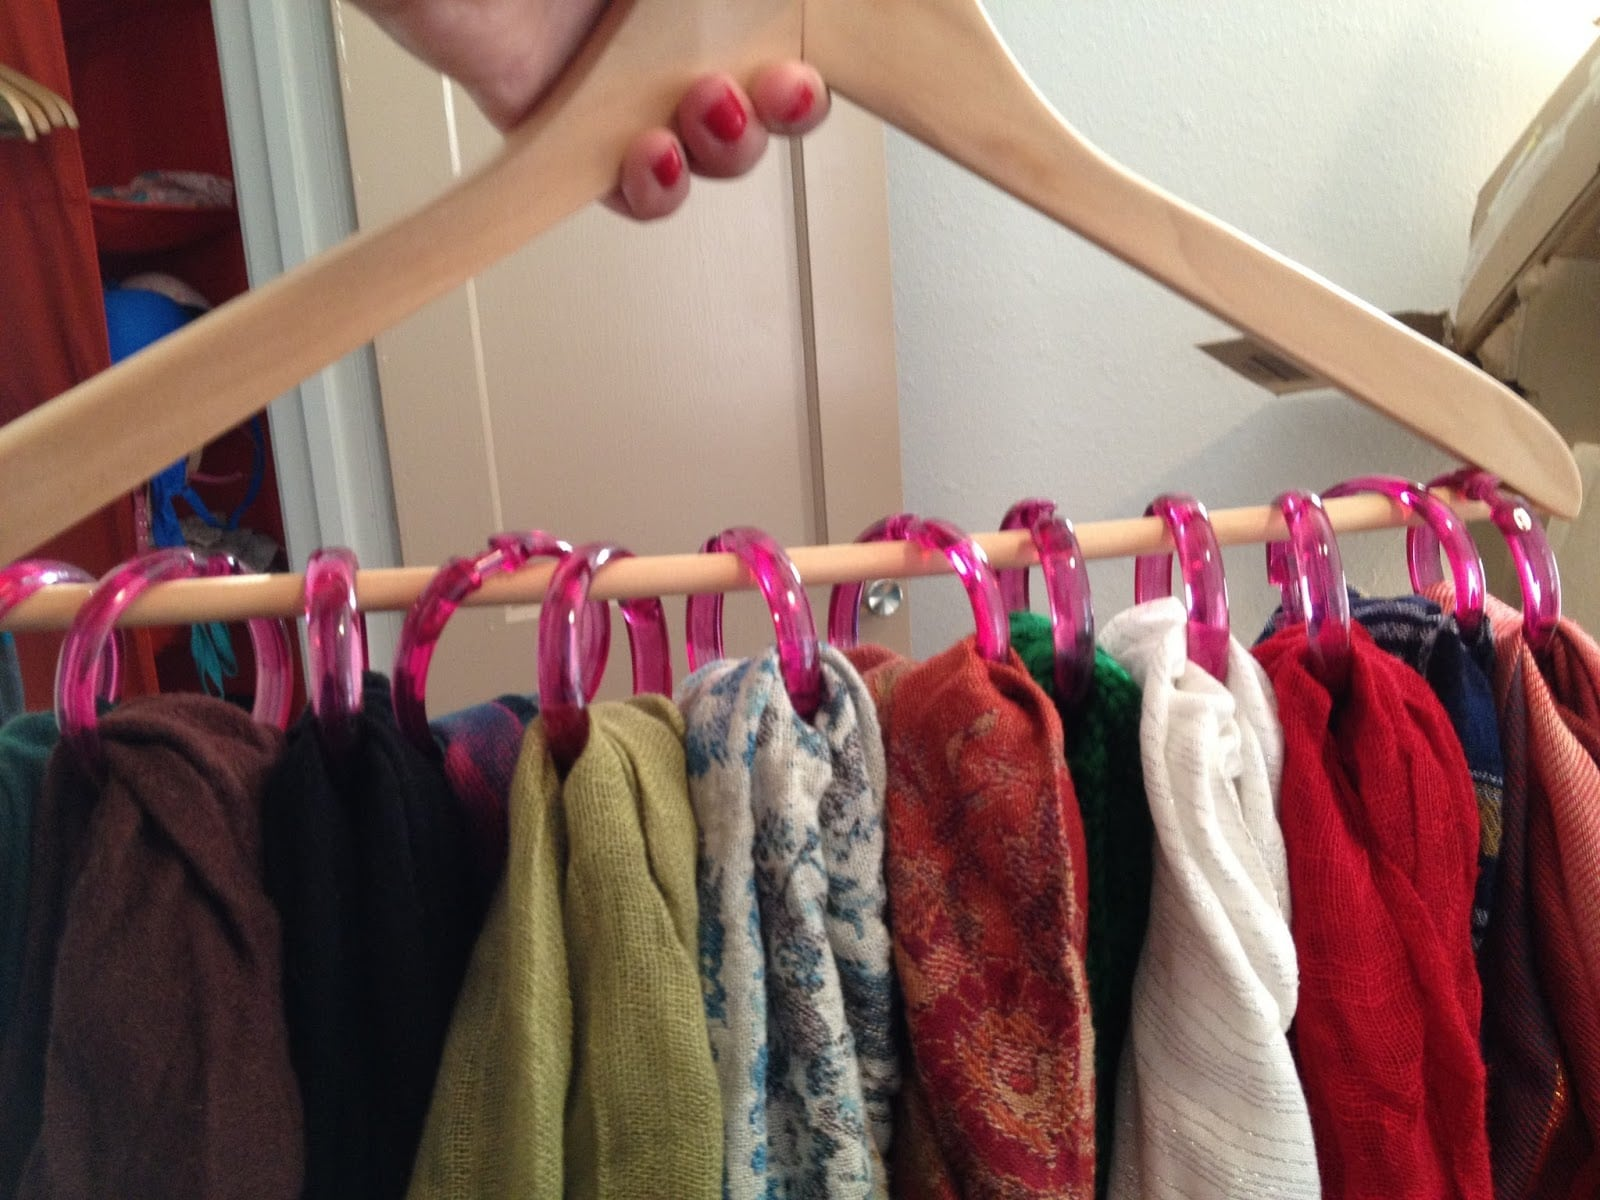 Basic Scarf Organizer For The Closet